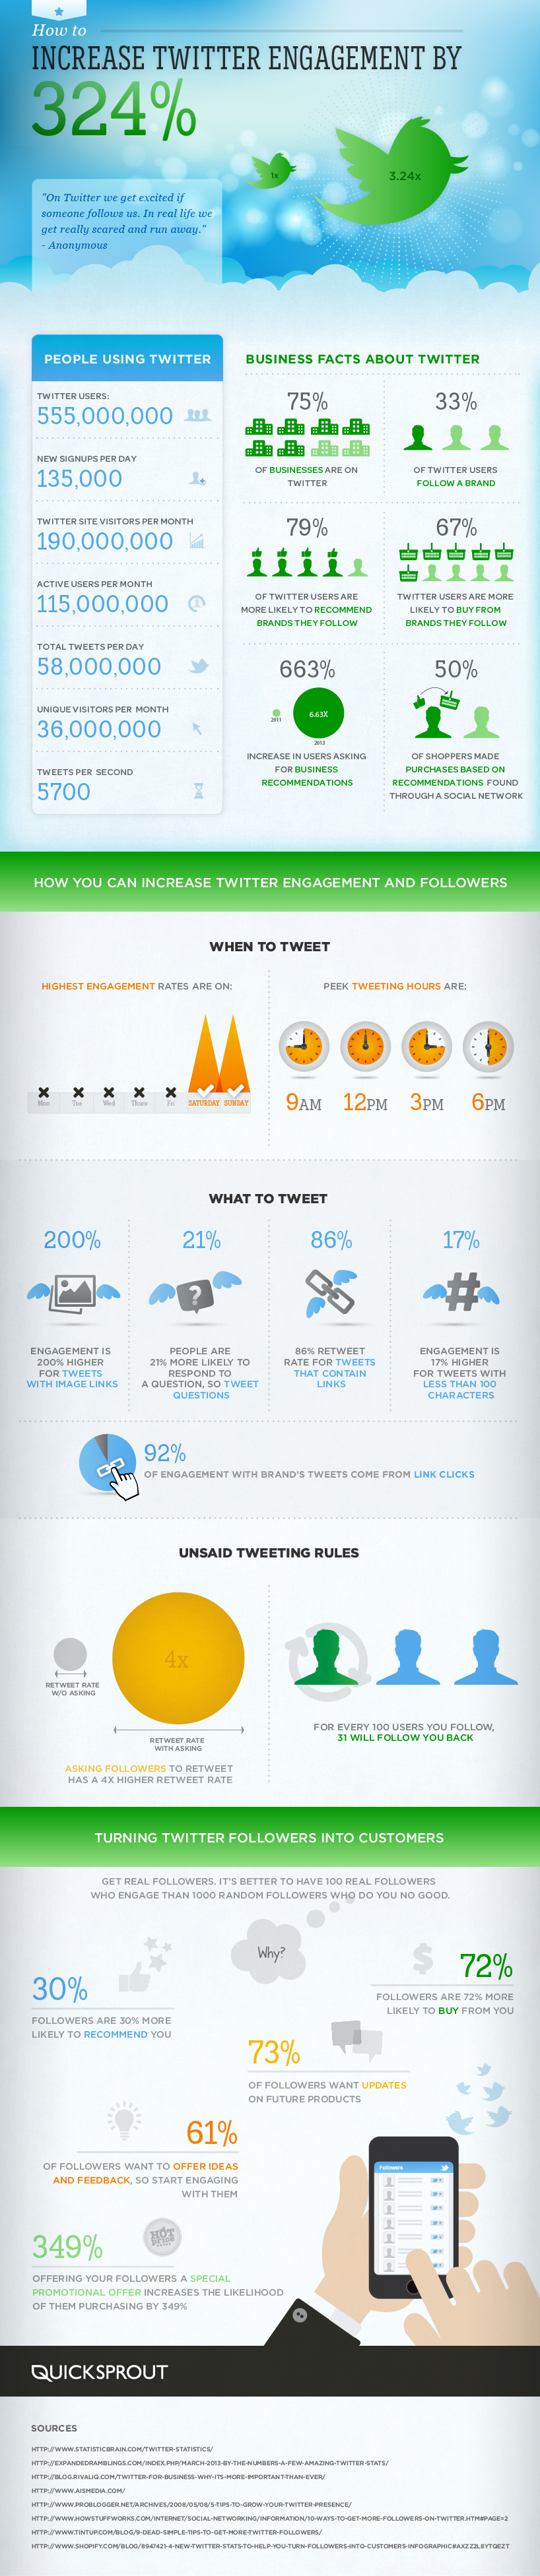 how to grow your Twitter traffic and engagement by 324%.